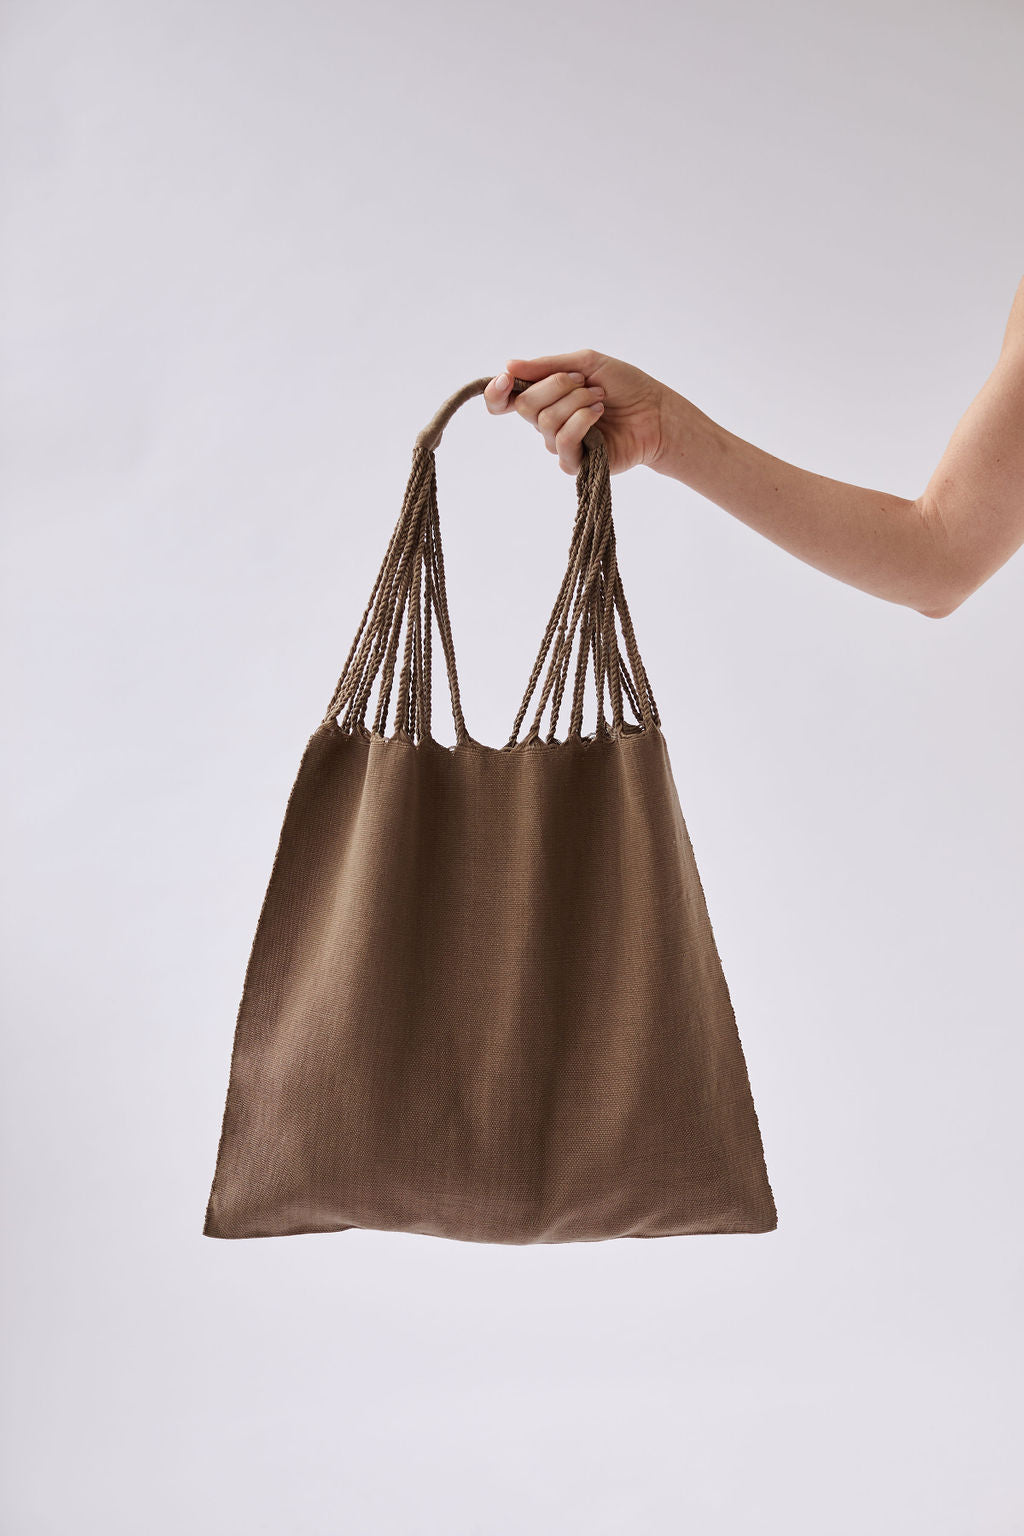 The Textile Tote in Pebble